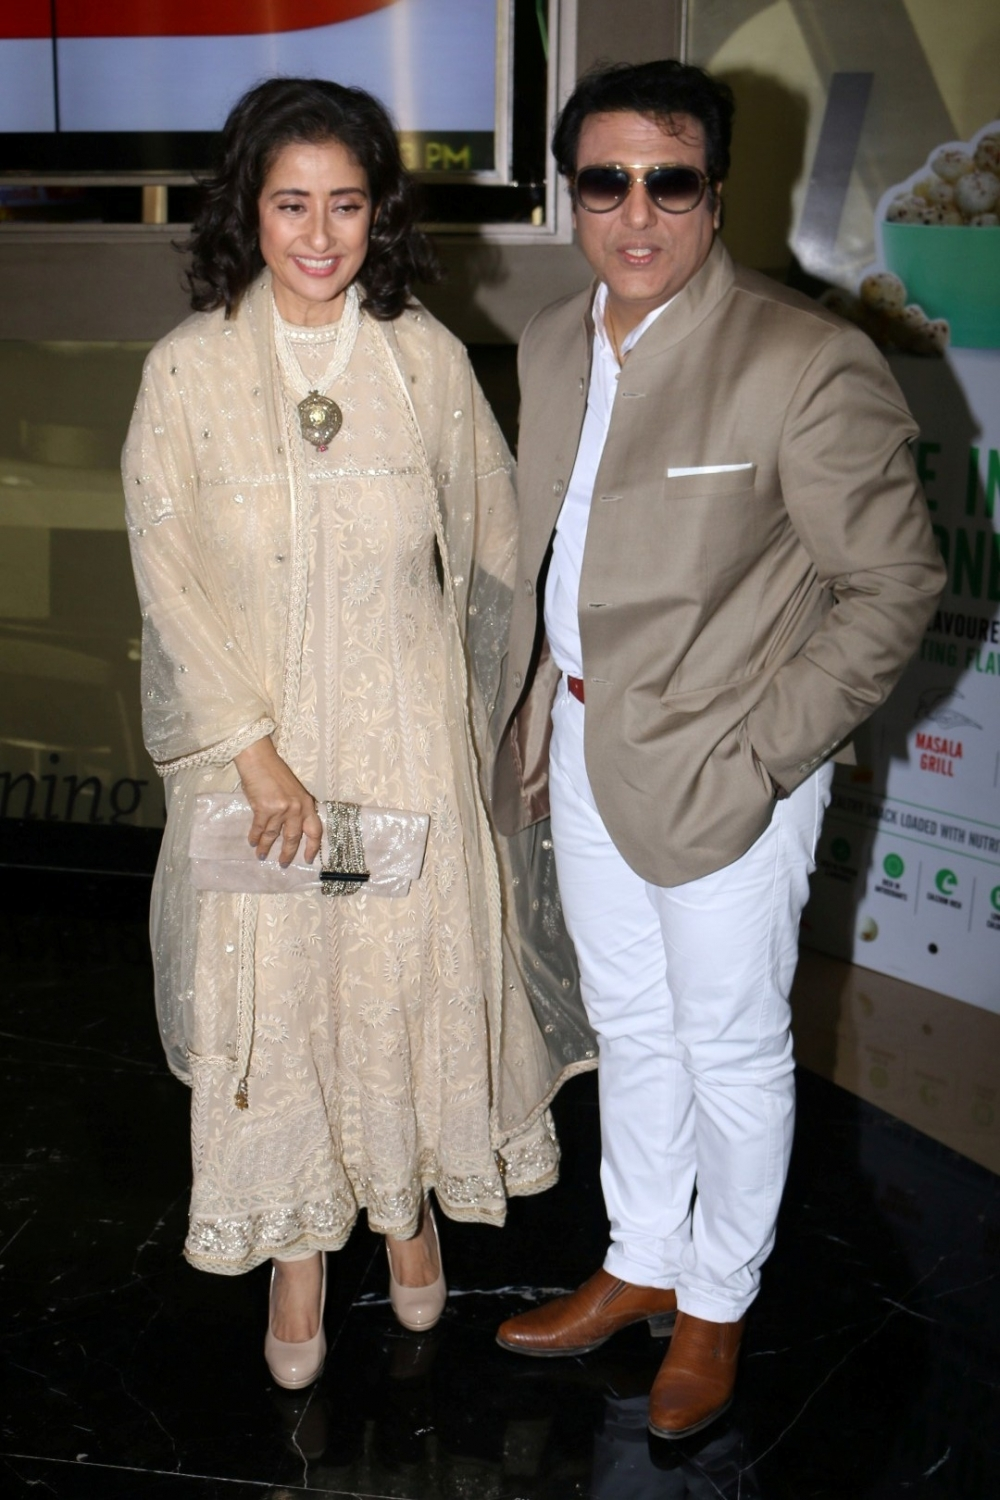 Mumbai:  Actors Govinda and Manisha Koirala during the trailer launch of film Aa Gaya Hero in Mumbai on Feb 1, 2017. (Photo: IANS)